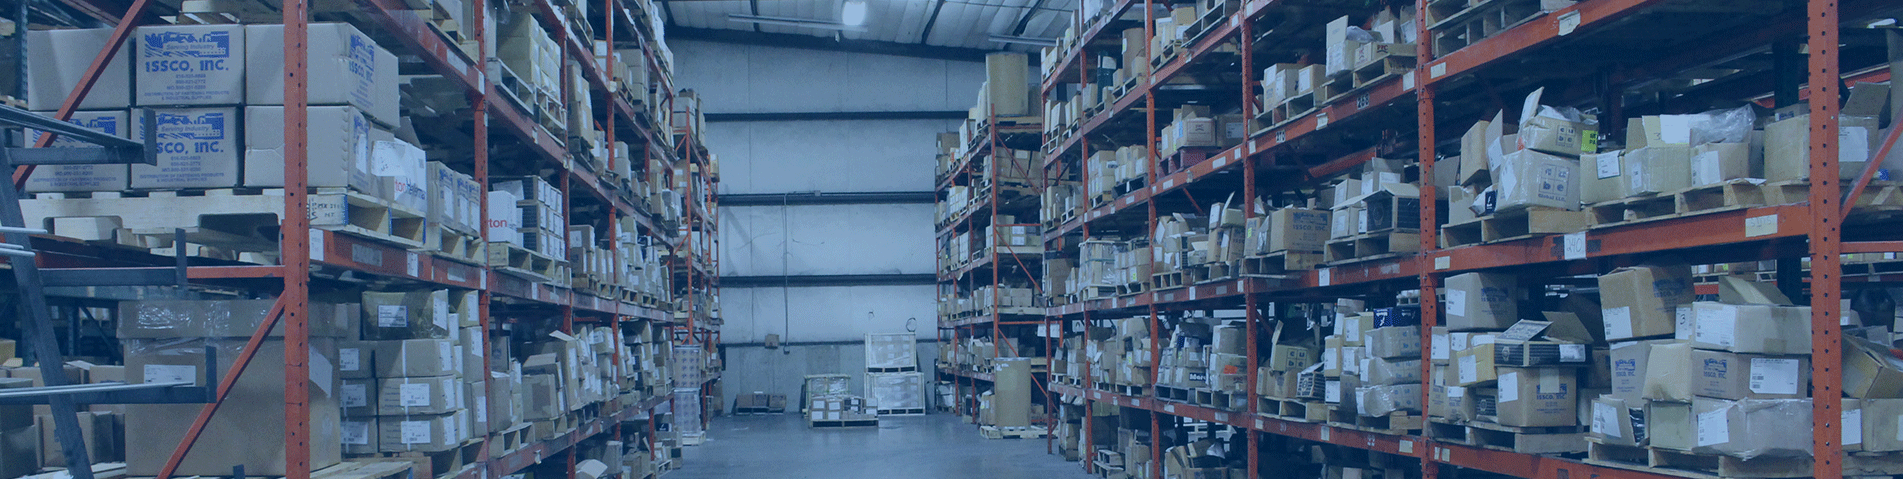 wide shot of ISSCO's warehouse